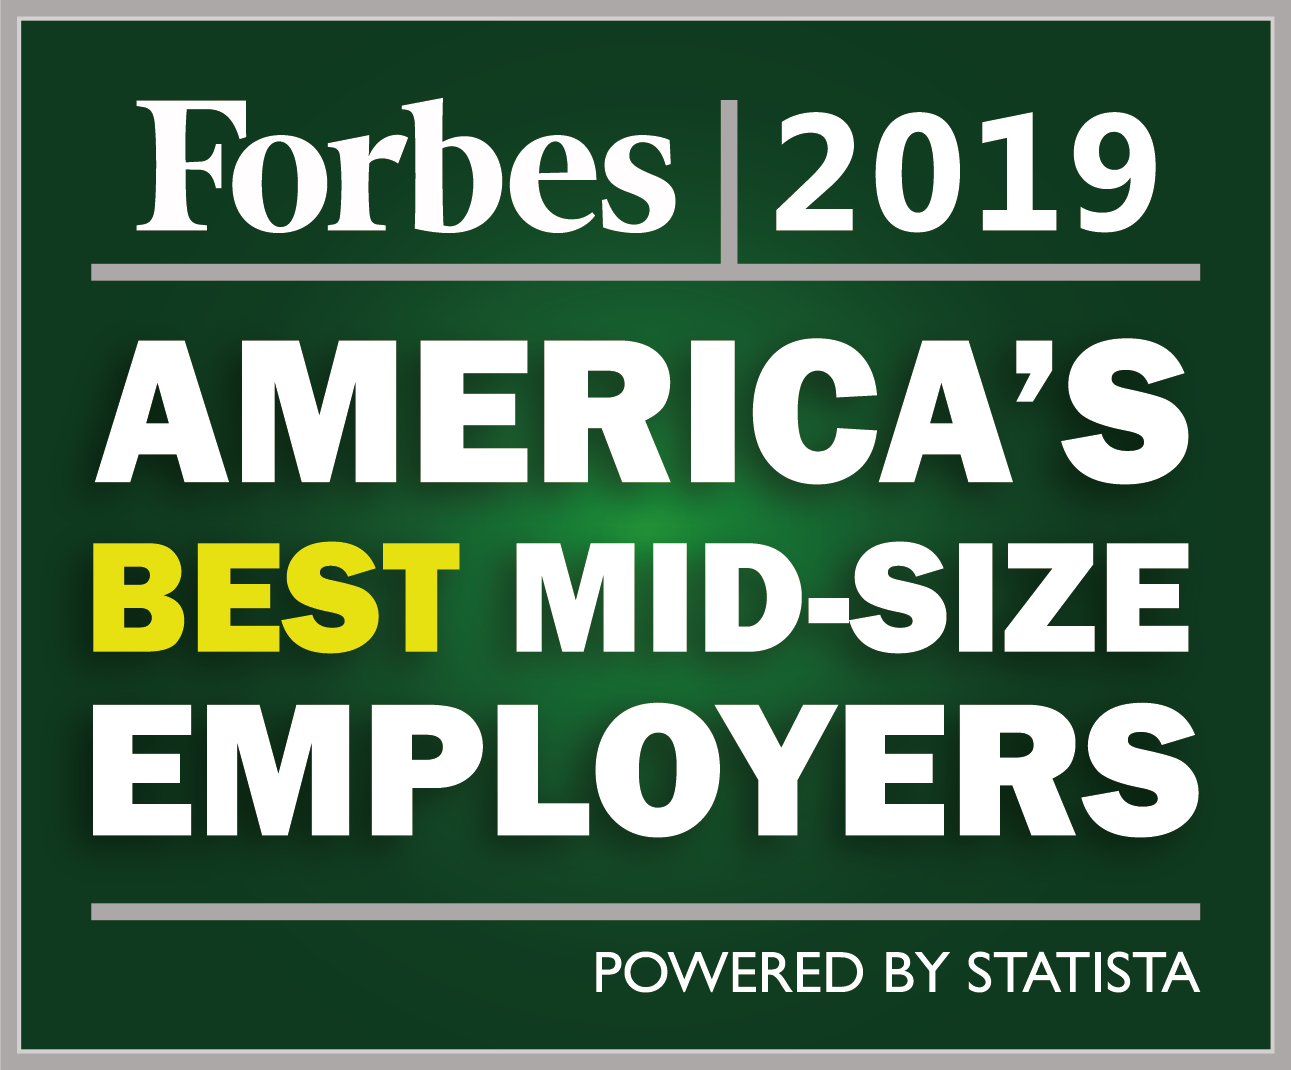 Forbes 2019 America's Best Mid-Size Employers